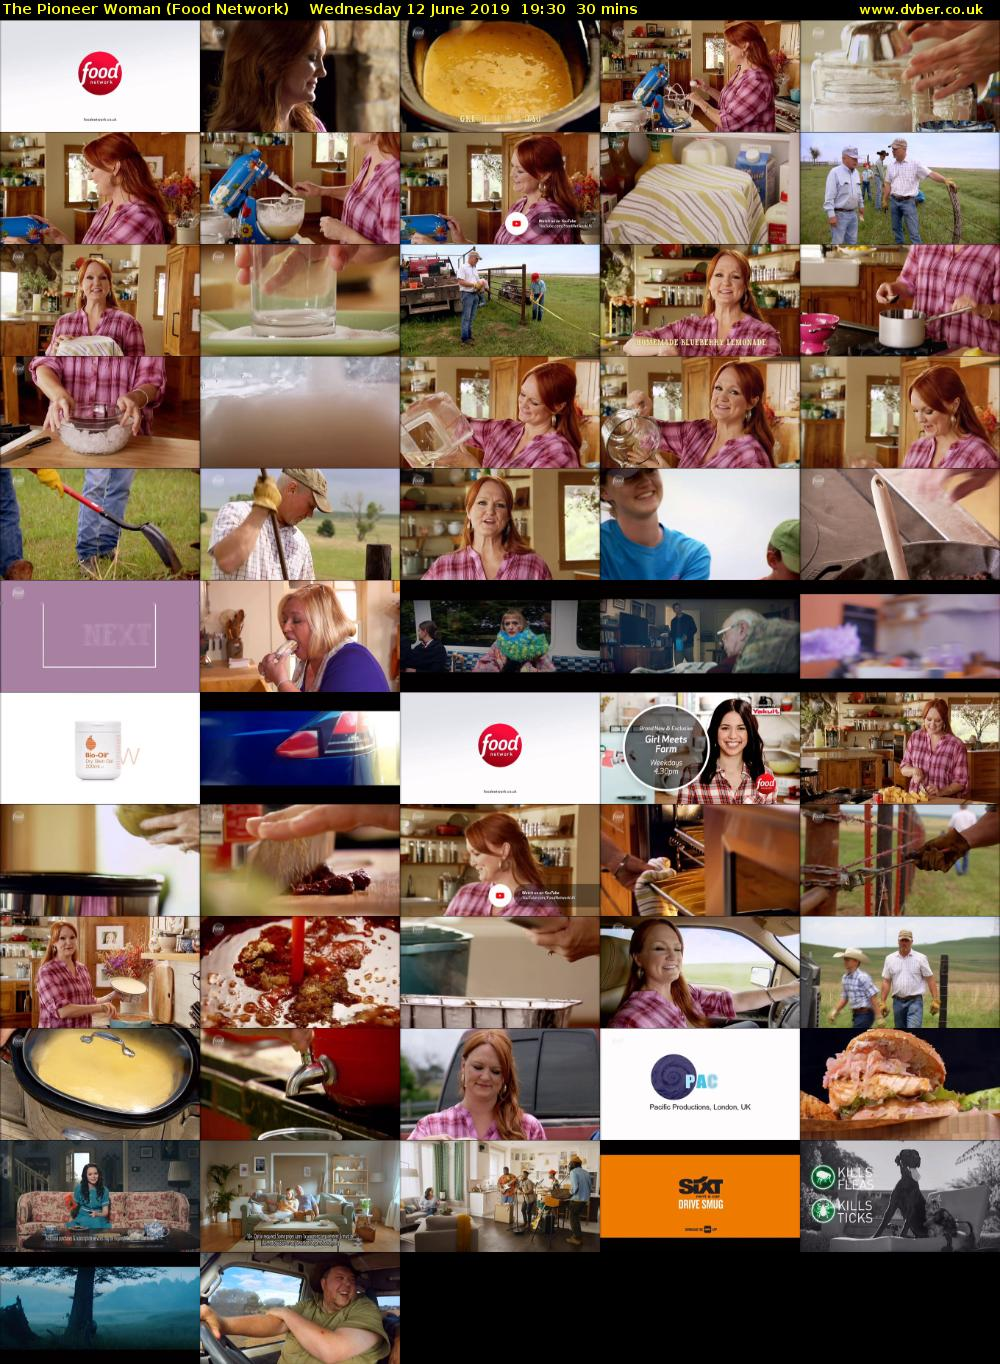 The Pioneer Woman (Food Network) Wednesday 12 June 2019 19:30 - 20:00